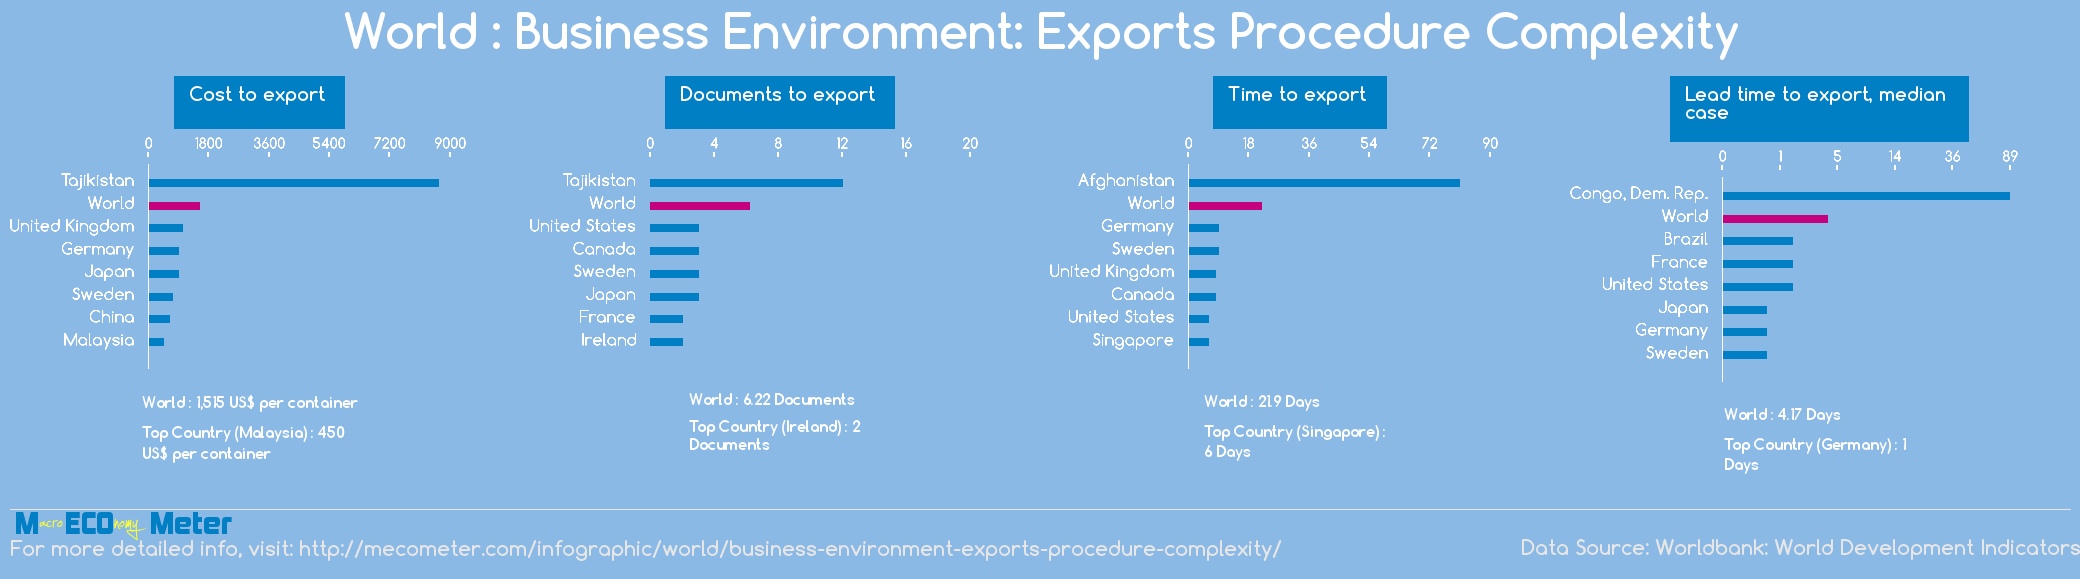 World : Business Environment: Exports Procedure Complexity